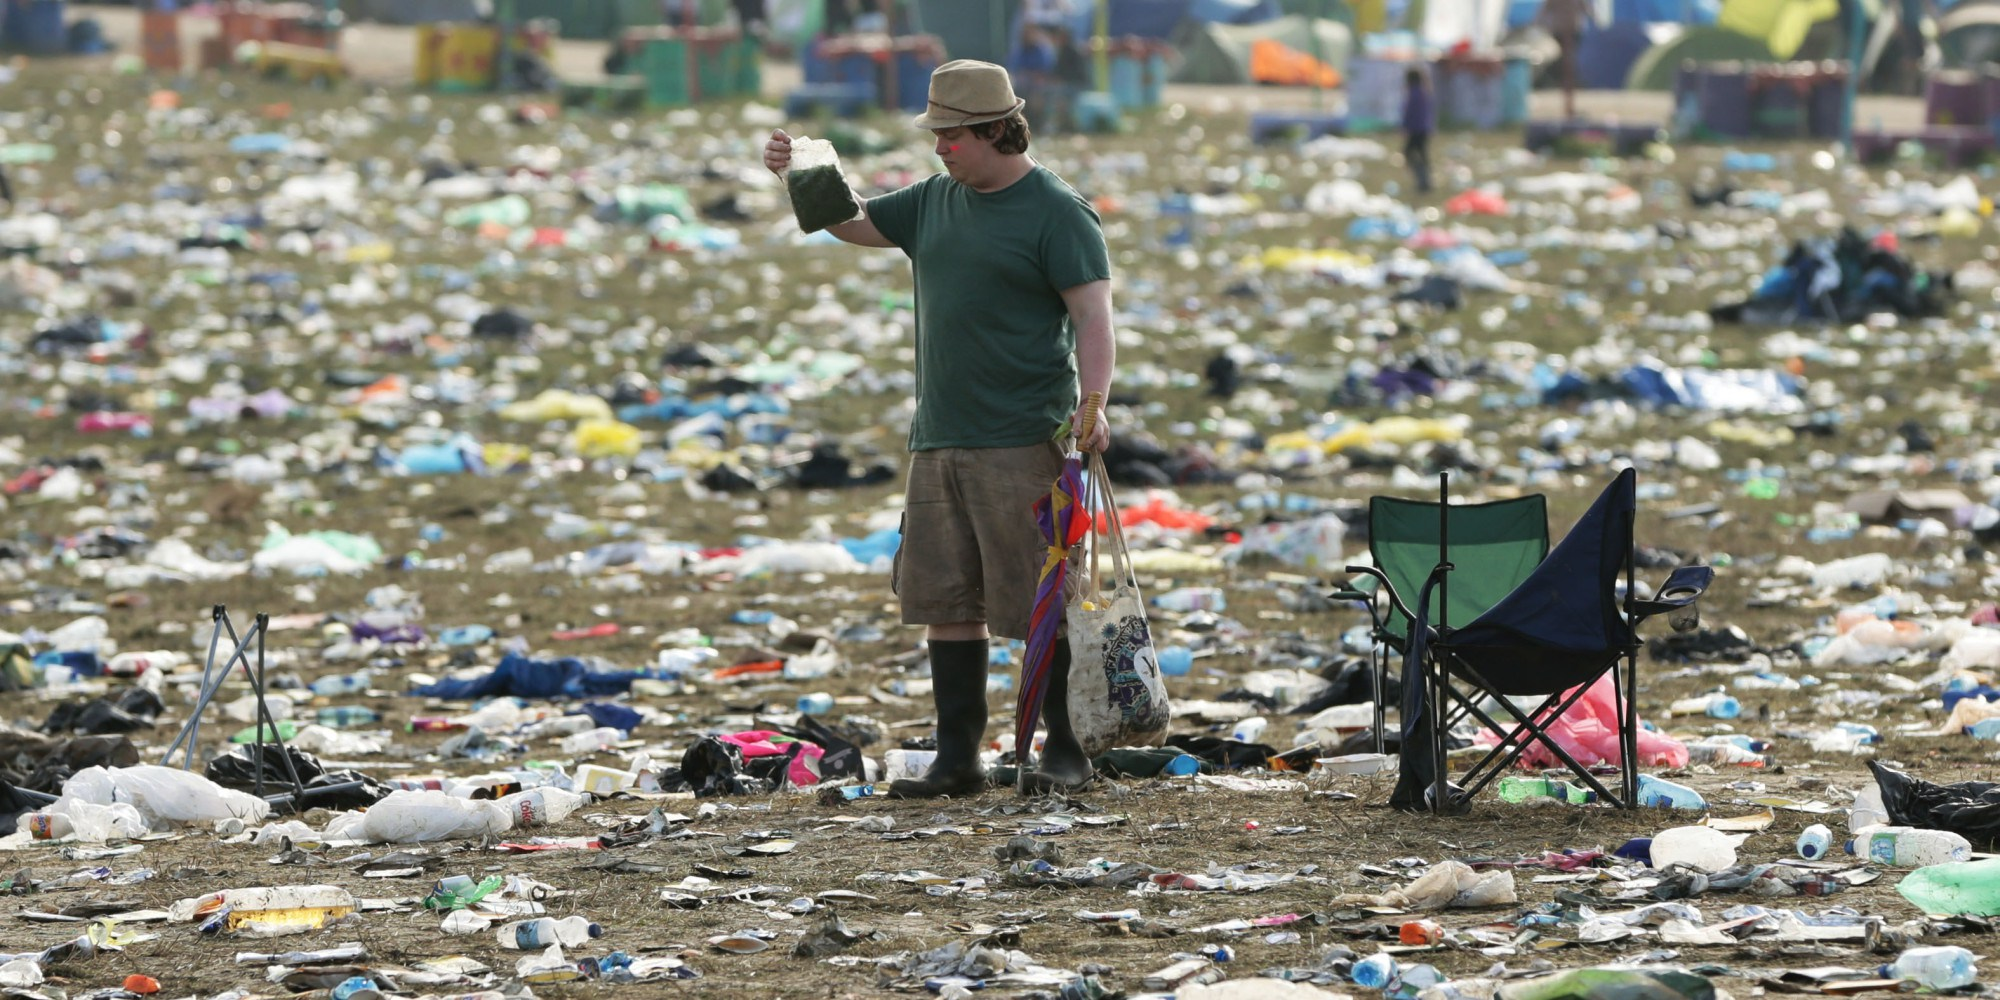 How to Festival without a trace